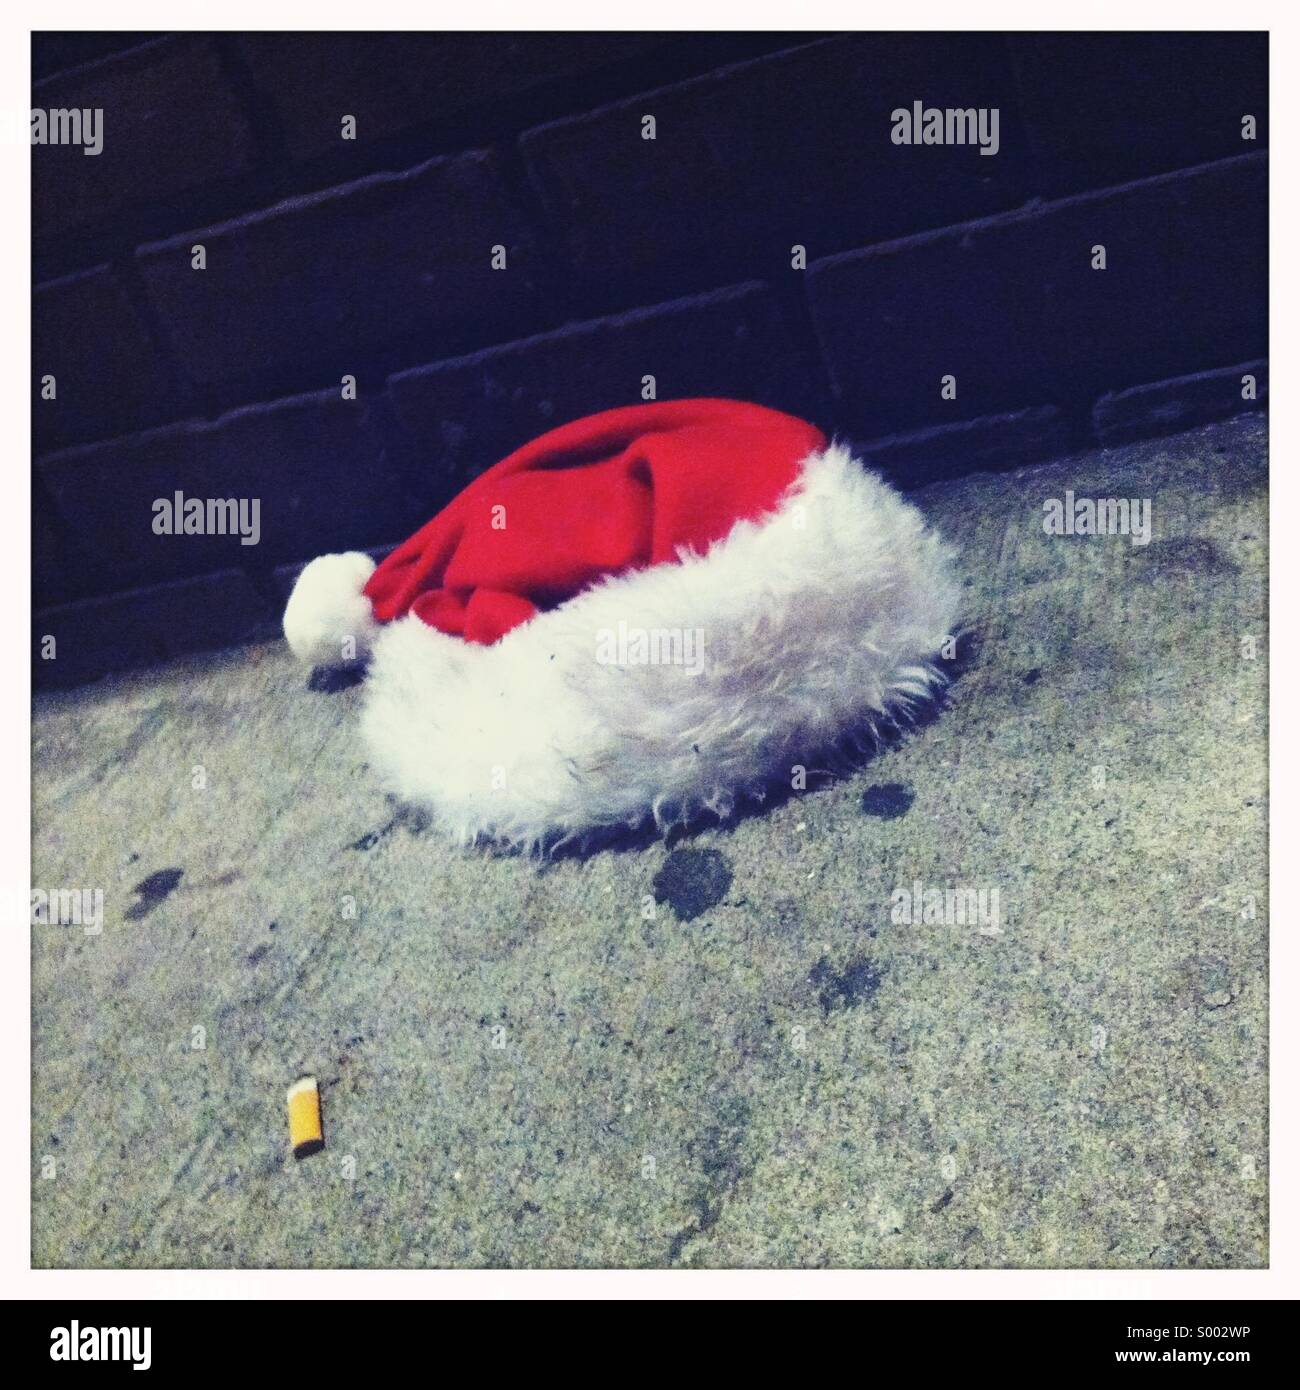 A red and white Santa's hat on a dirty sidewalk - Stock Image